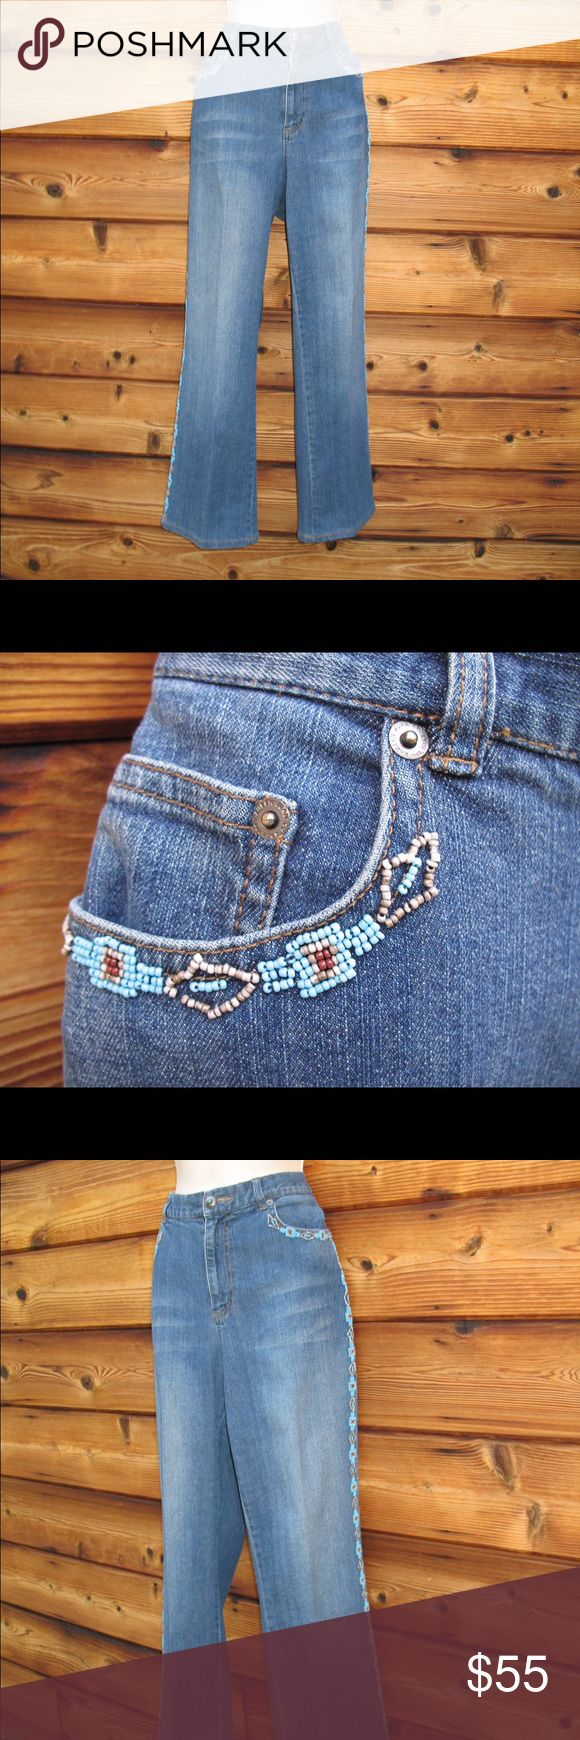 "Lauren Jeans Co High-Waist Southwestern Jeans Lauren Jeans Company High-Waist Southwestern Beaded Jeans  *Very good condition. No stains, holes or other imperfections.No size or material tags.  Details: Lauren Jeans Company Size: 8/10 Color: Medium Blue Button/zip front closure 5-pocket style Baby boot cut Southwestern, turquoise beading on the pockets and down the sides of both legs High-waist Machine wash inside out. Gentle Cycle  Measurements: Waist: 32"" Hips: 38"" Front Rise: 11.5""…"